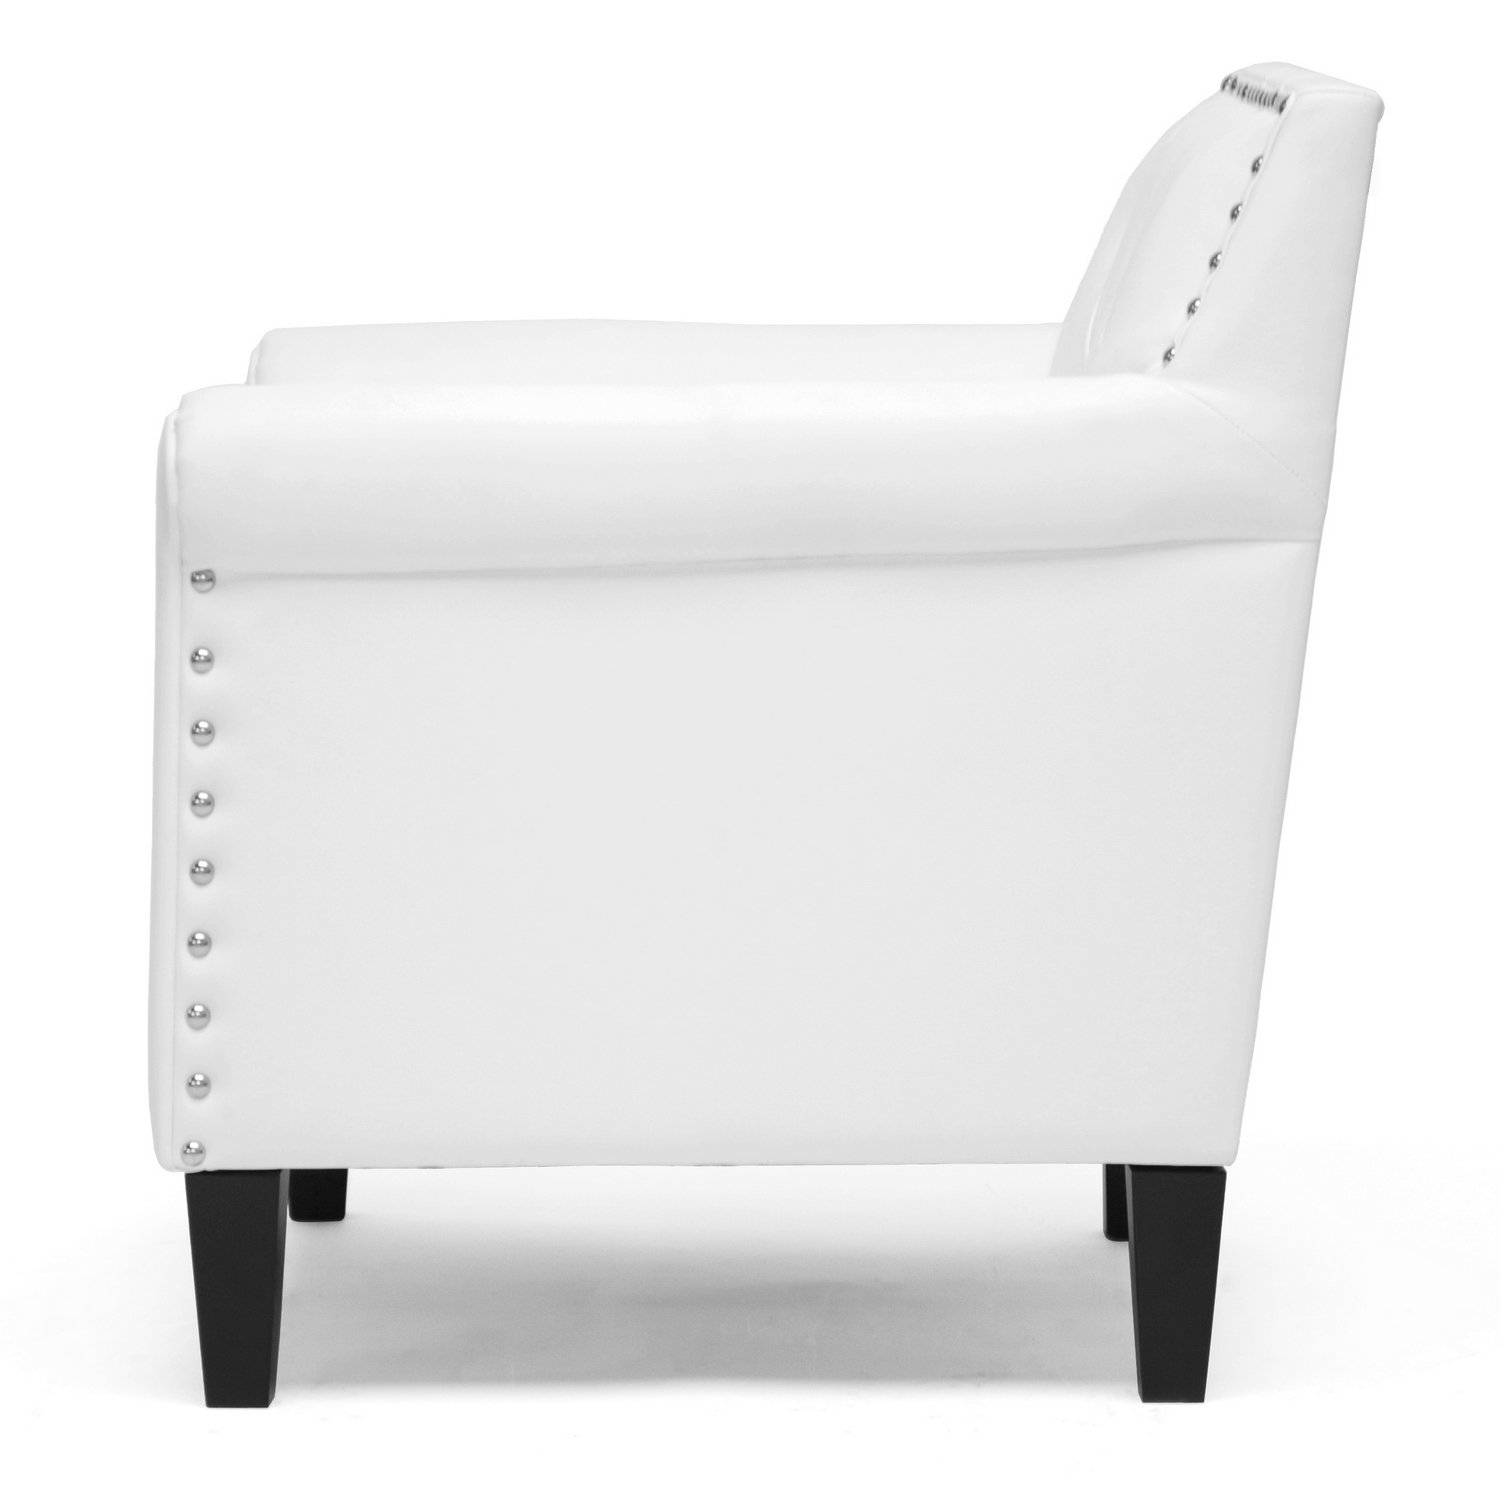 amazoncom  baxton studio thalassa modern arm chair white  chairs -